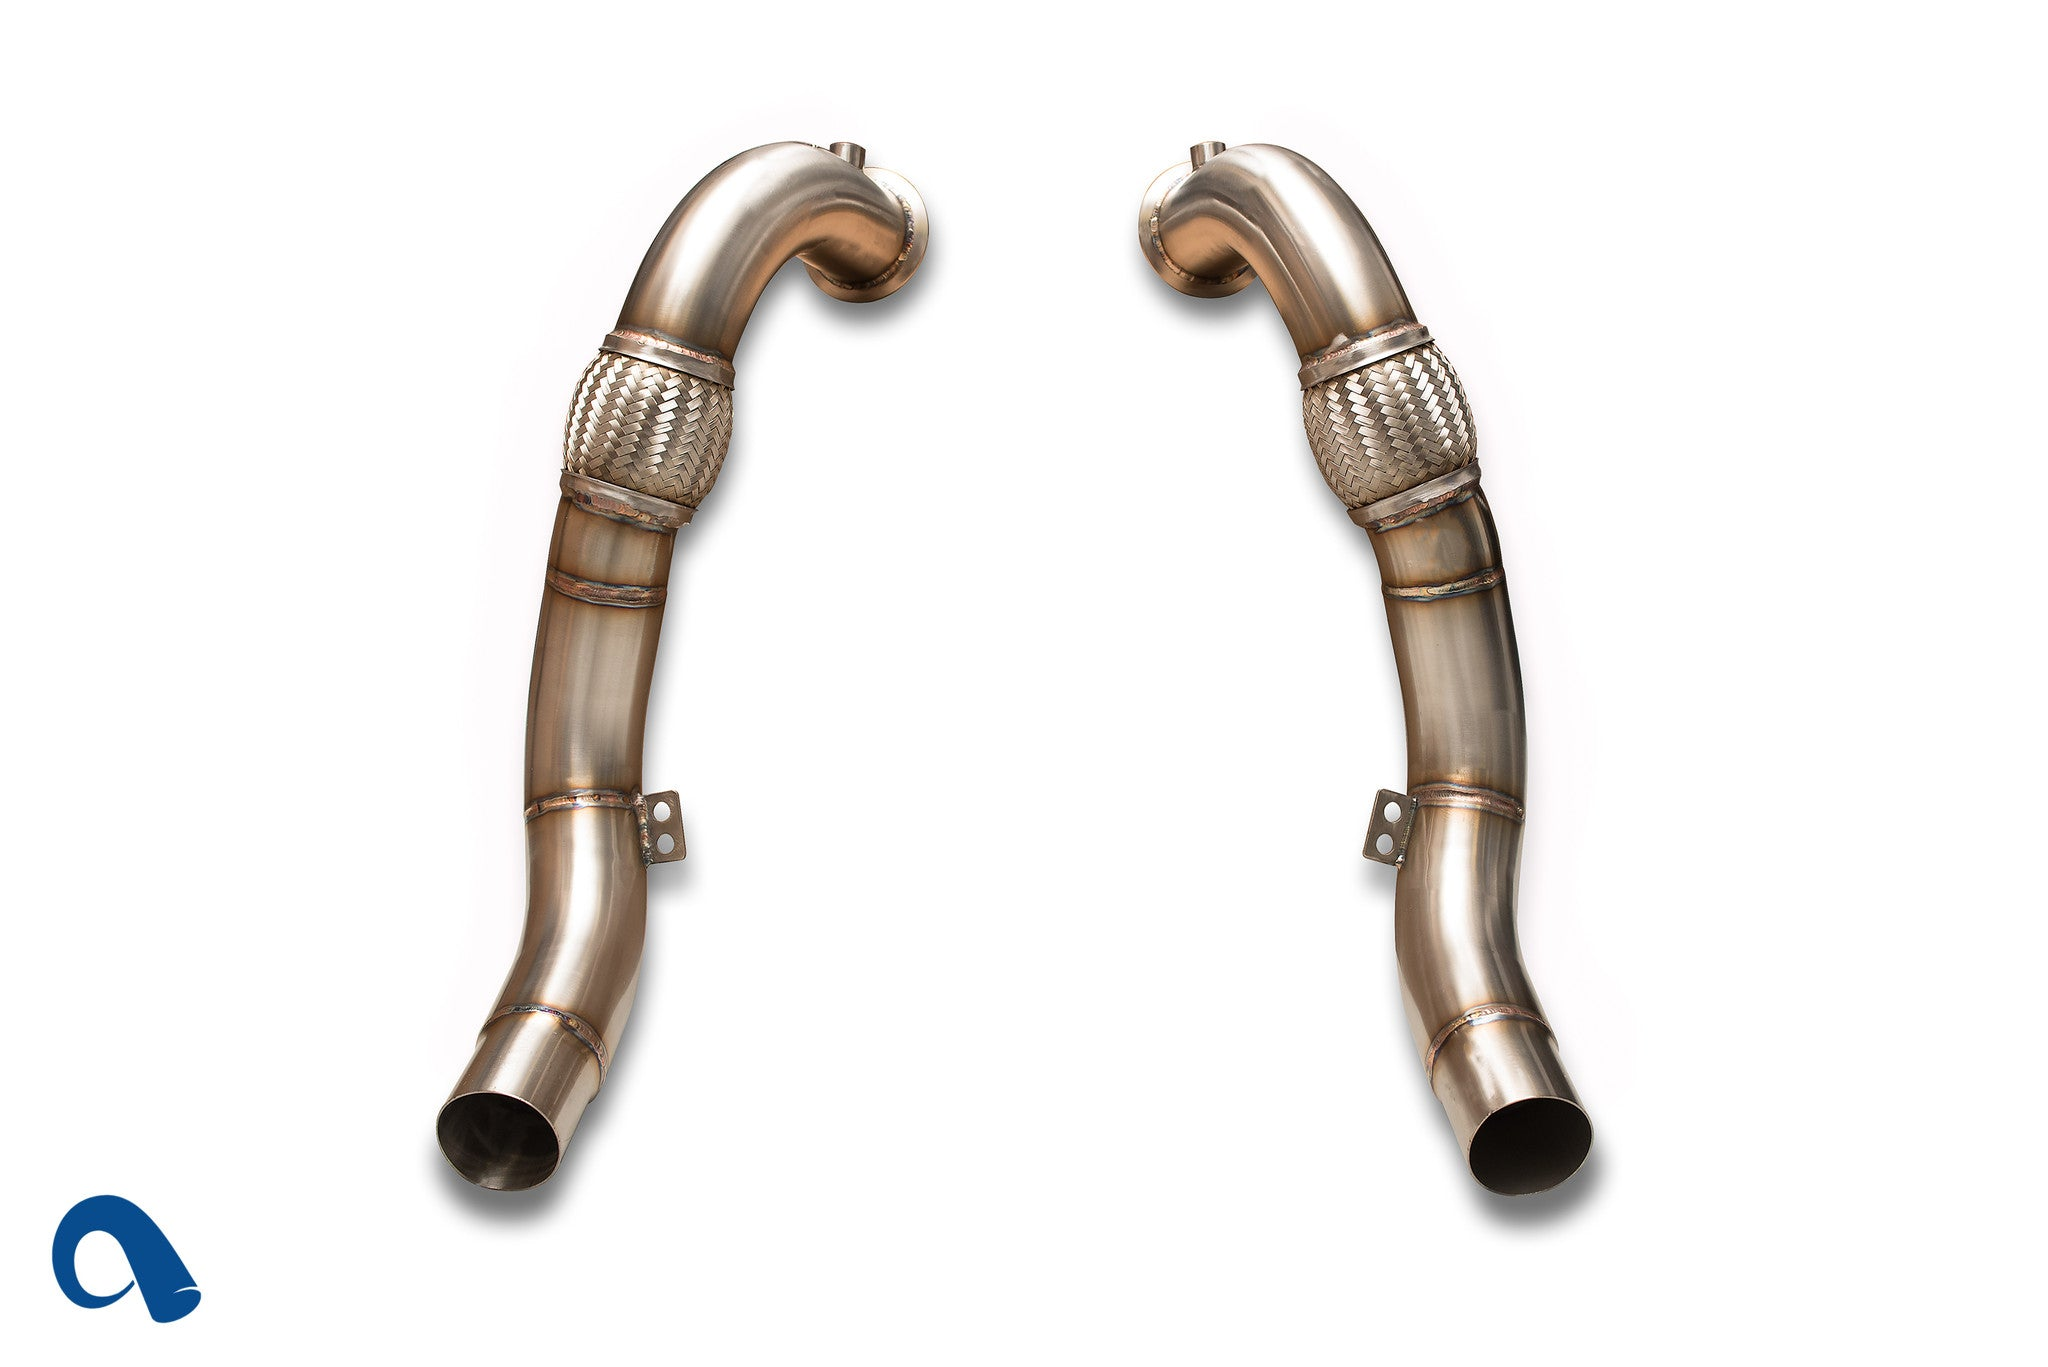 BMW N63 Downpipes for | Twin-turbo V8 BMW X5 and X6 | F10 550i by BMW tuner, Active Autowerke